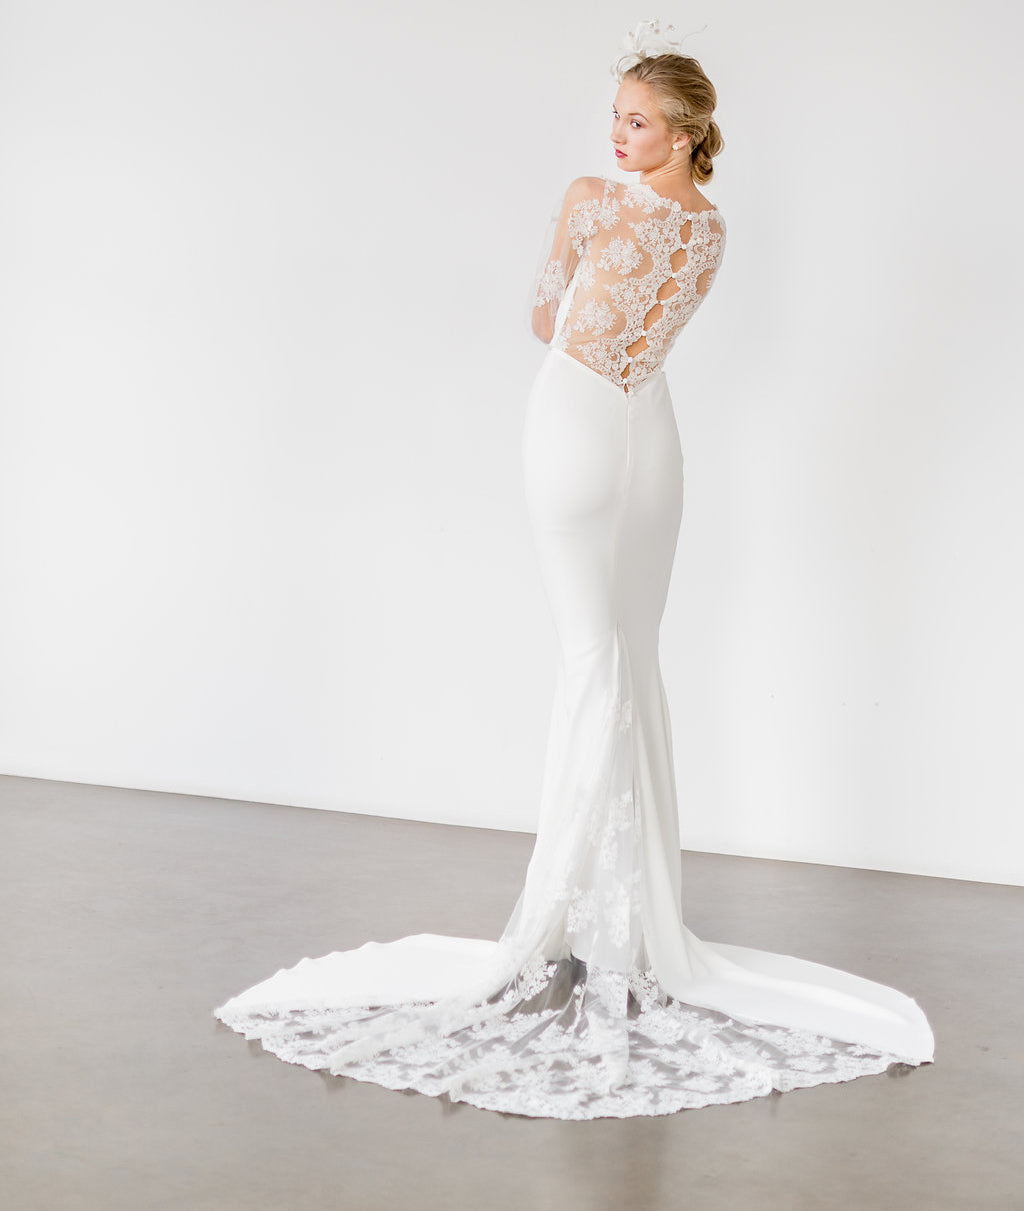 Modern and romantic backless lace wedding dress by Catherine Langlois. Custom made to order in Toronto, Ontario, Canada. Photo by Whitney Heard.